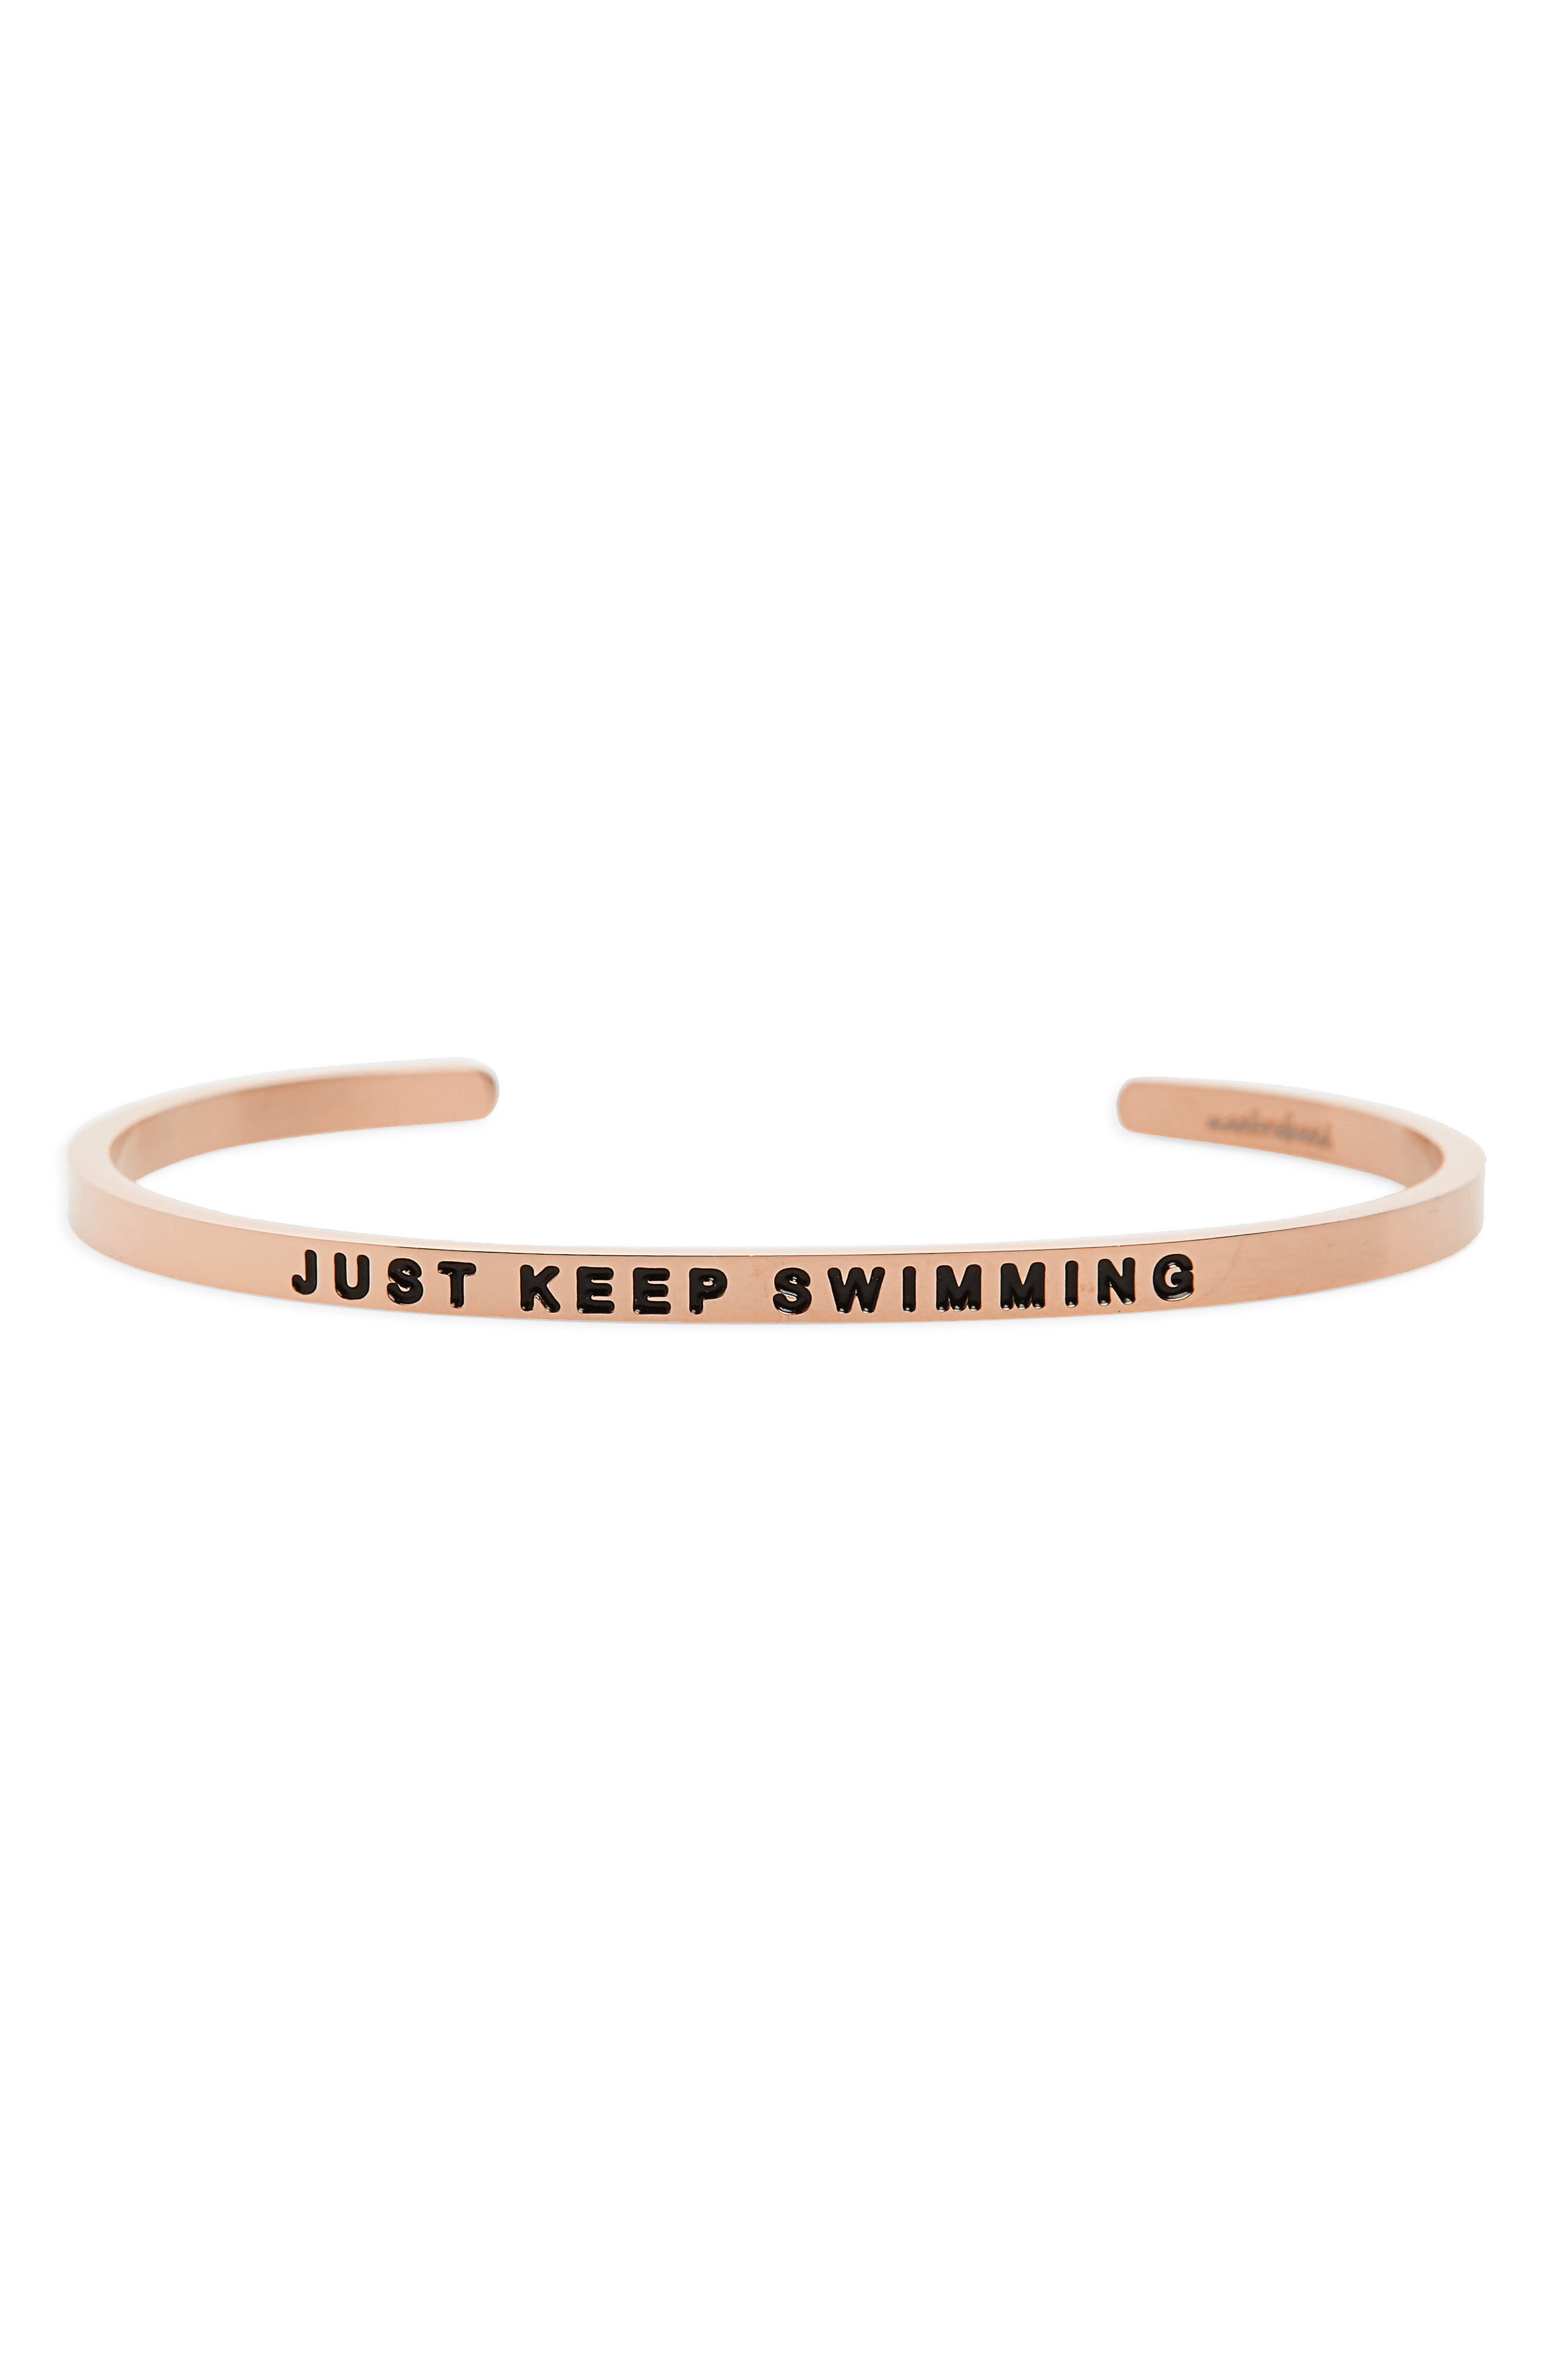 MantraBand Just Keep Swimming Engraved Cuff